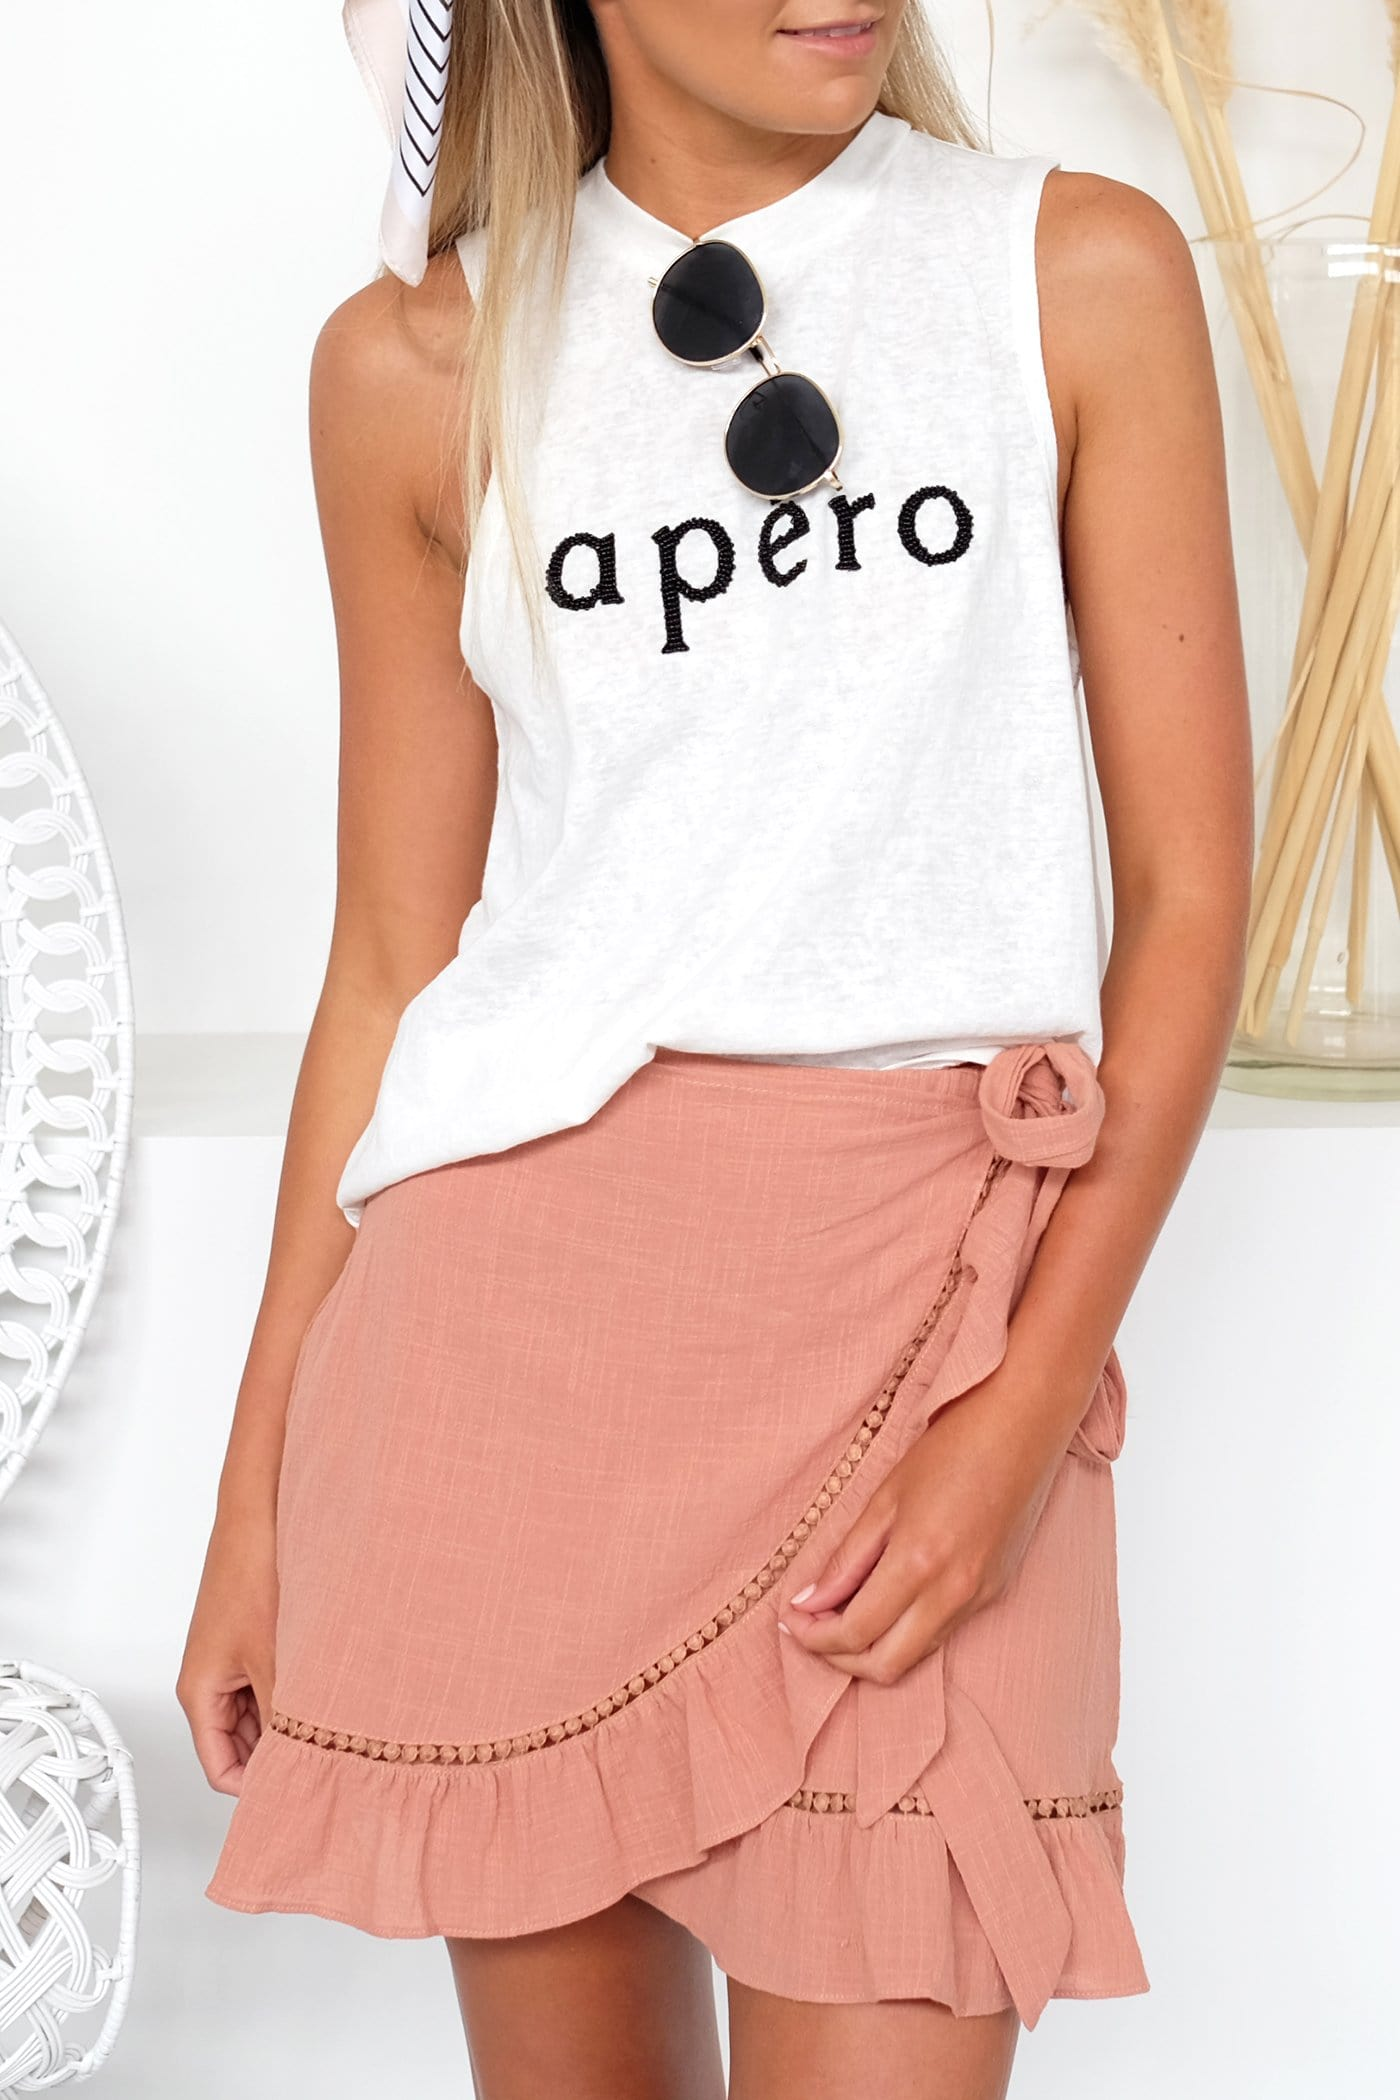 Apero Beaded Tank Top White Black Bead